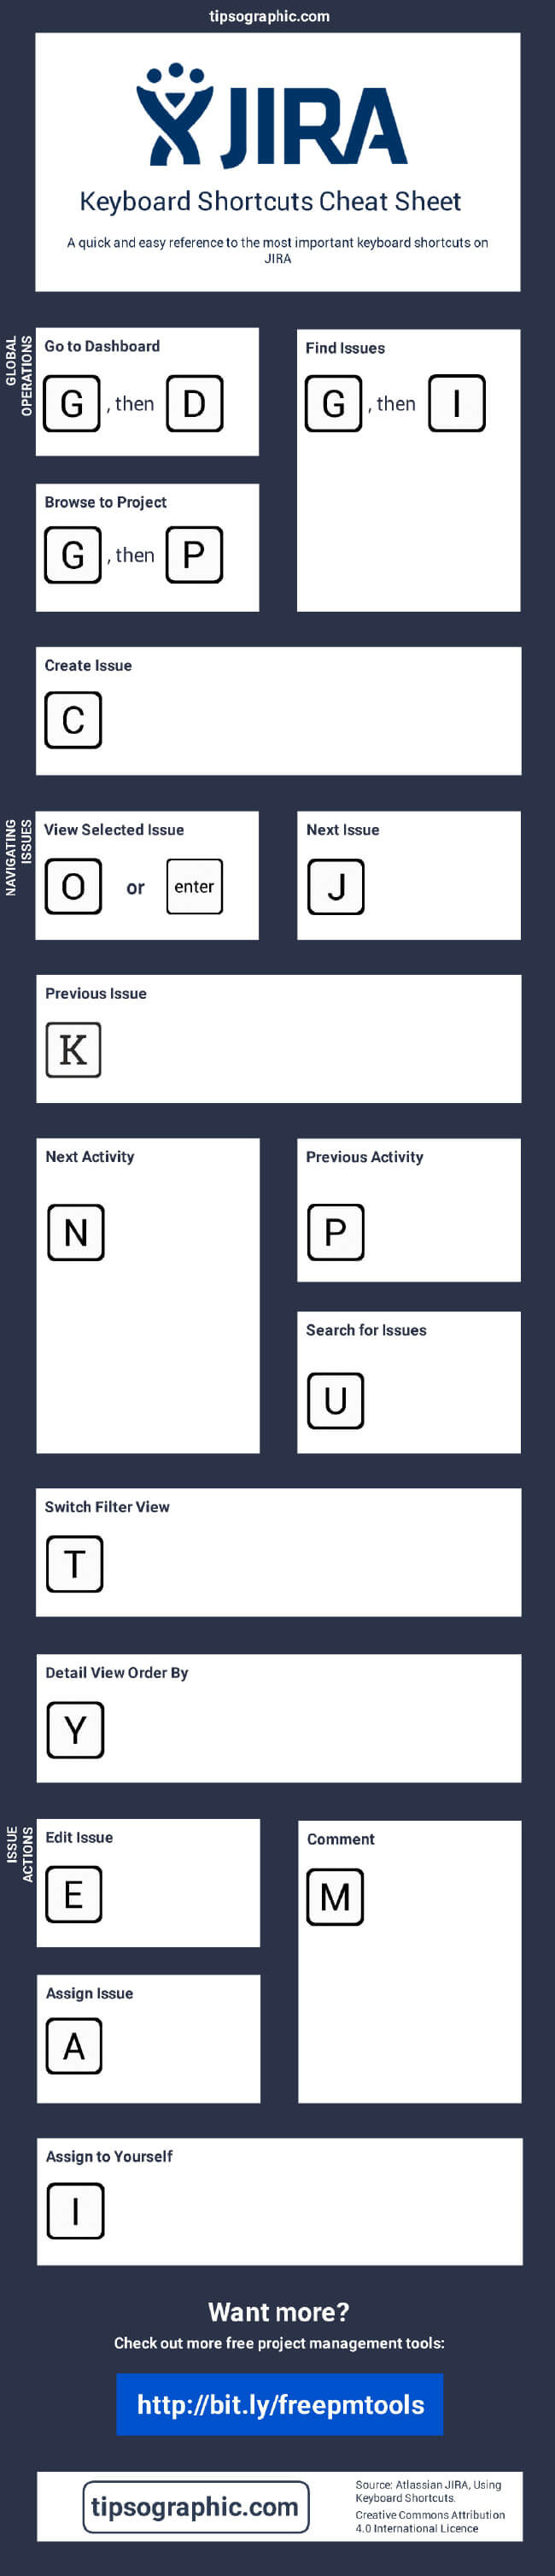 Image titled Jira 2016 Keyboard Shortcuts Cheat Sheet